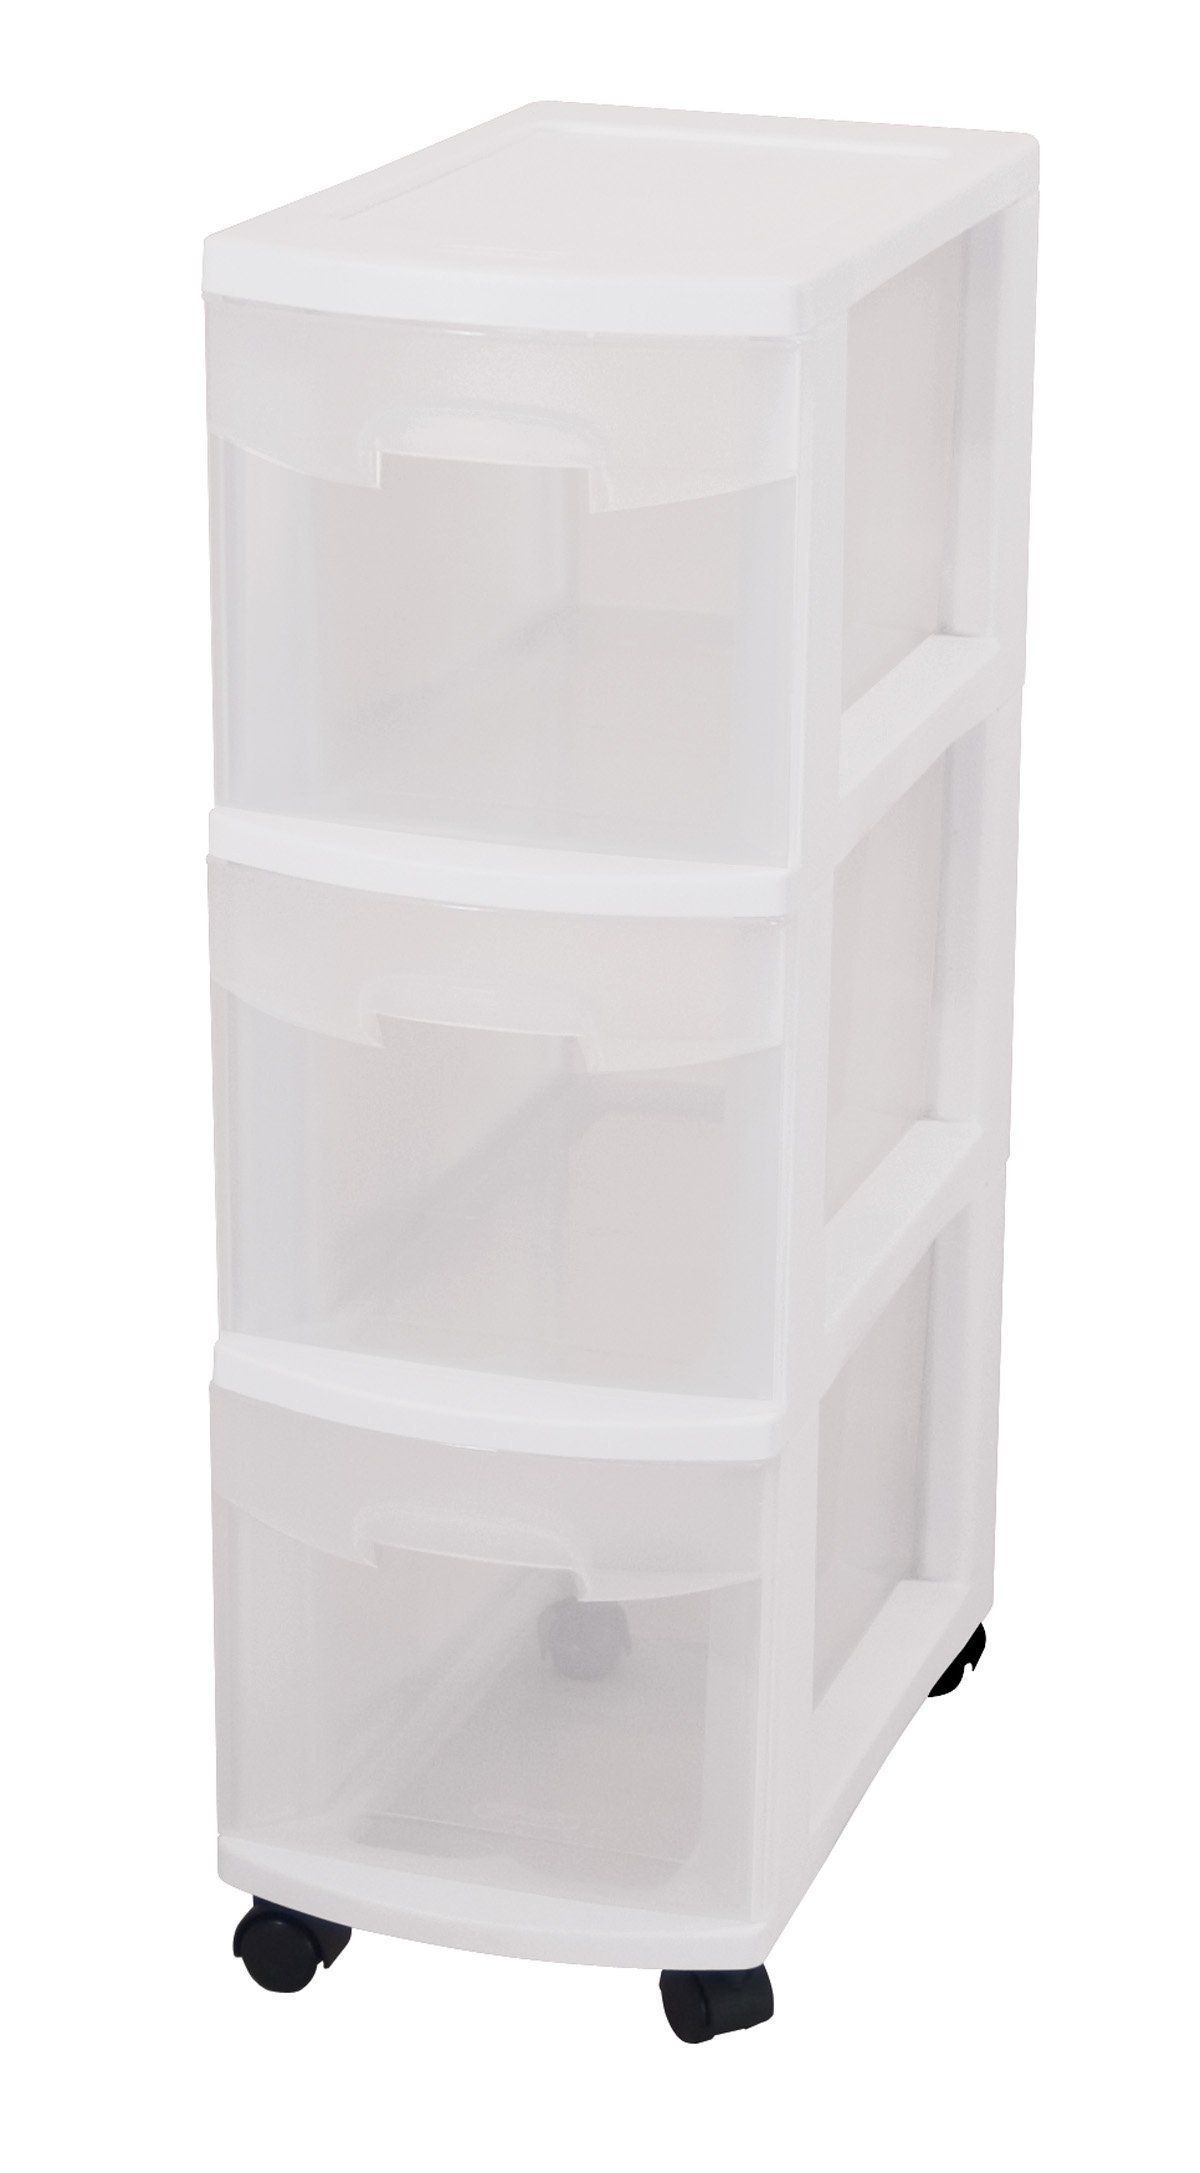 Amazon Com Sterilite 27308003 3 Drawer Narrow Cart With See Through Drawers And Black Casters White Plastic Storage Plastic Storage Drawers White Storage